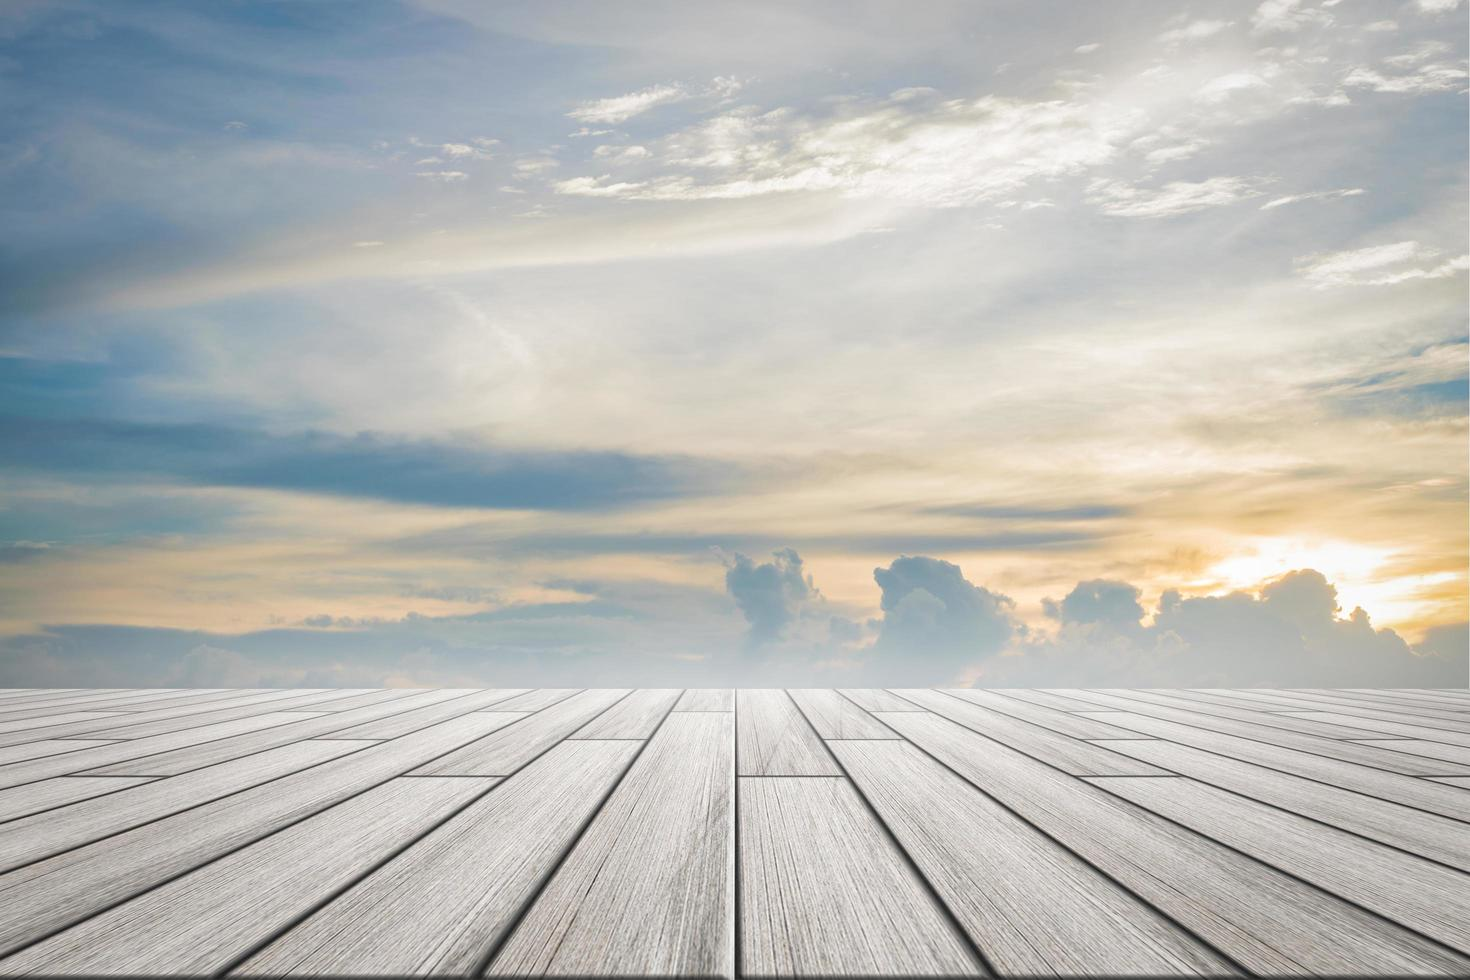 Wood floor plates with sunset sky background photo